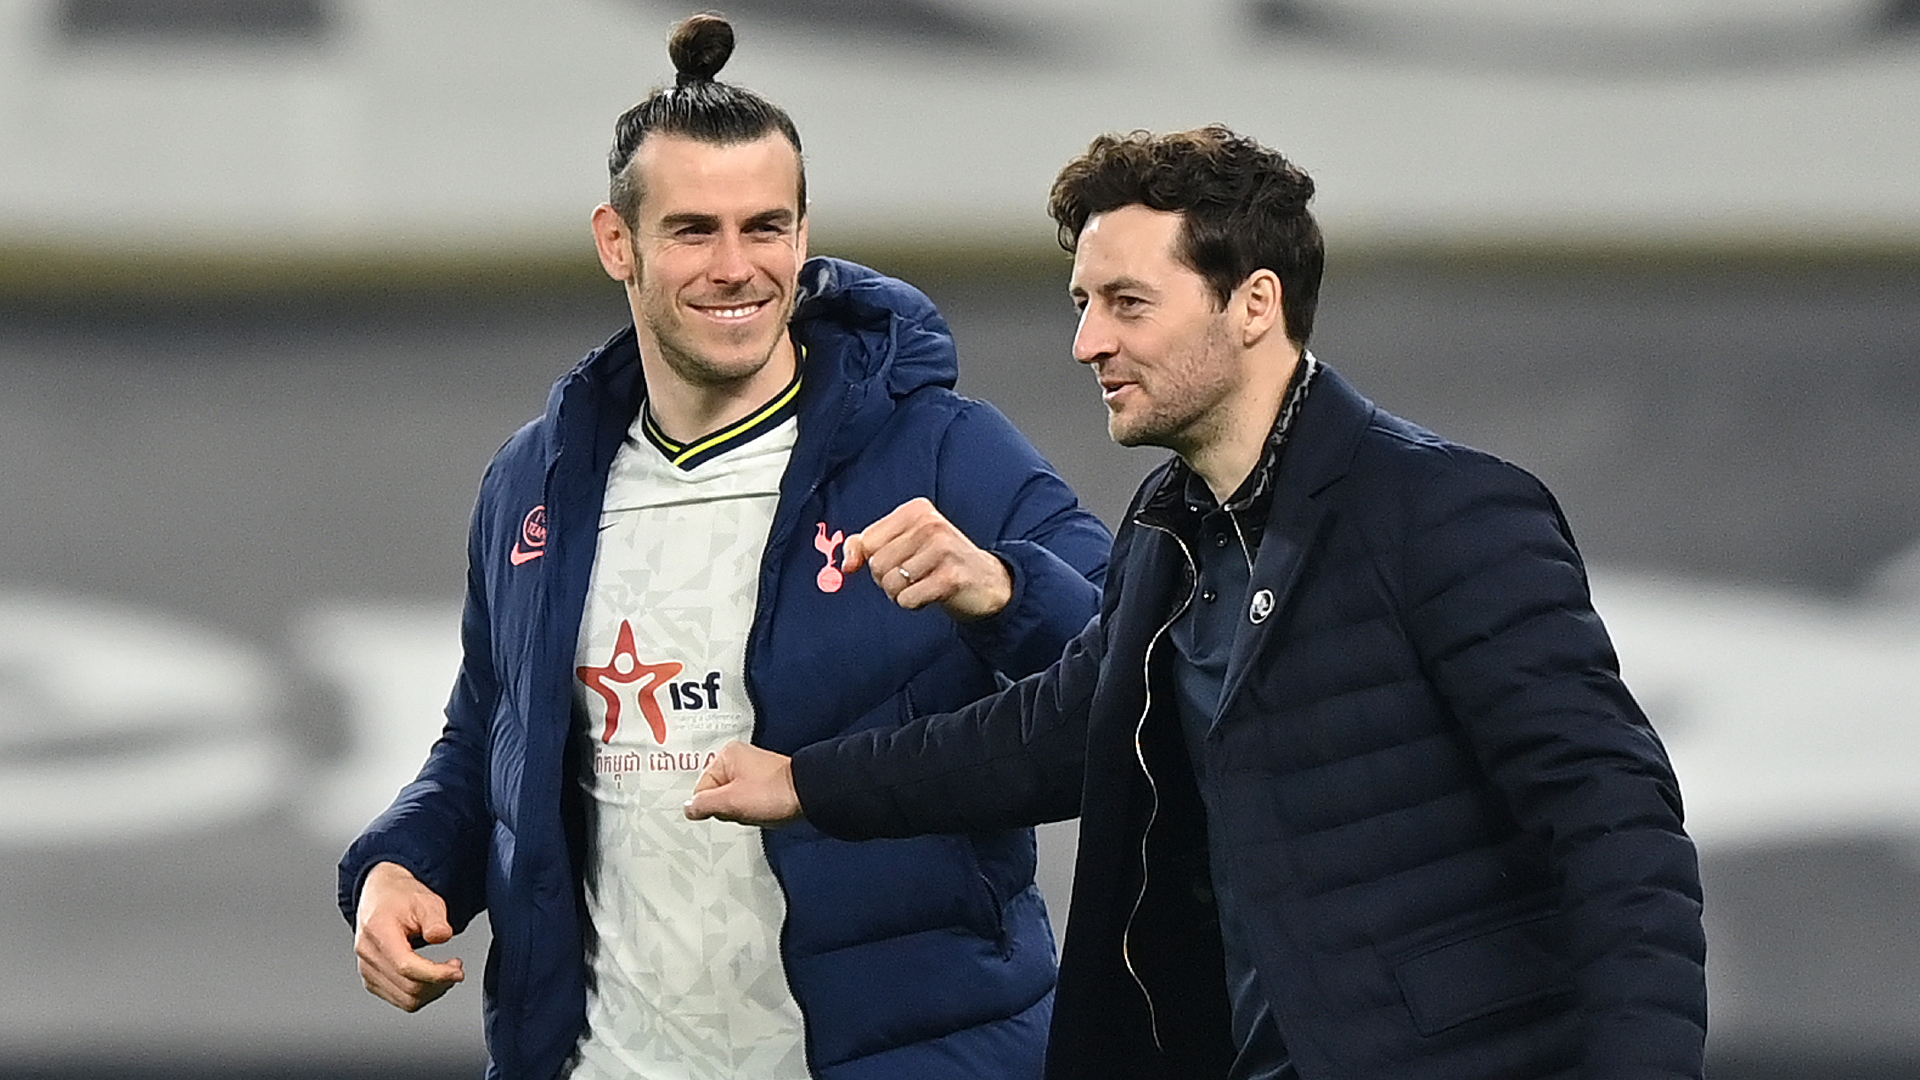 Bale 'didn't have the opportunity' to play his best under Mourinho at Spurs – agent